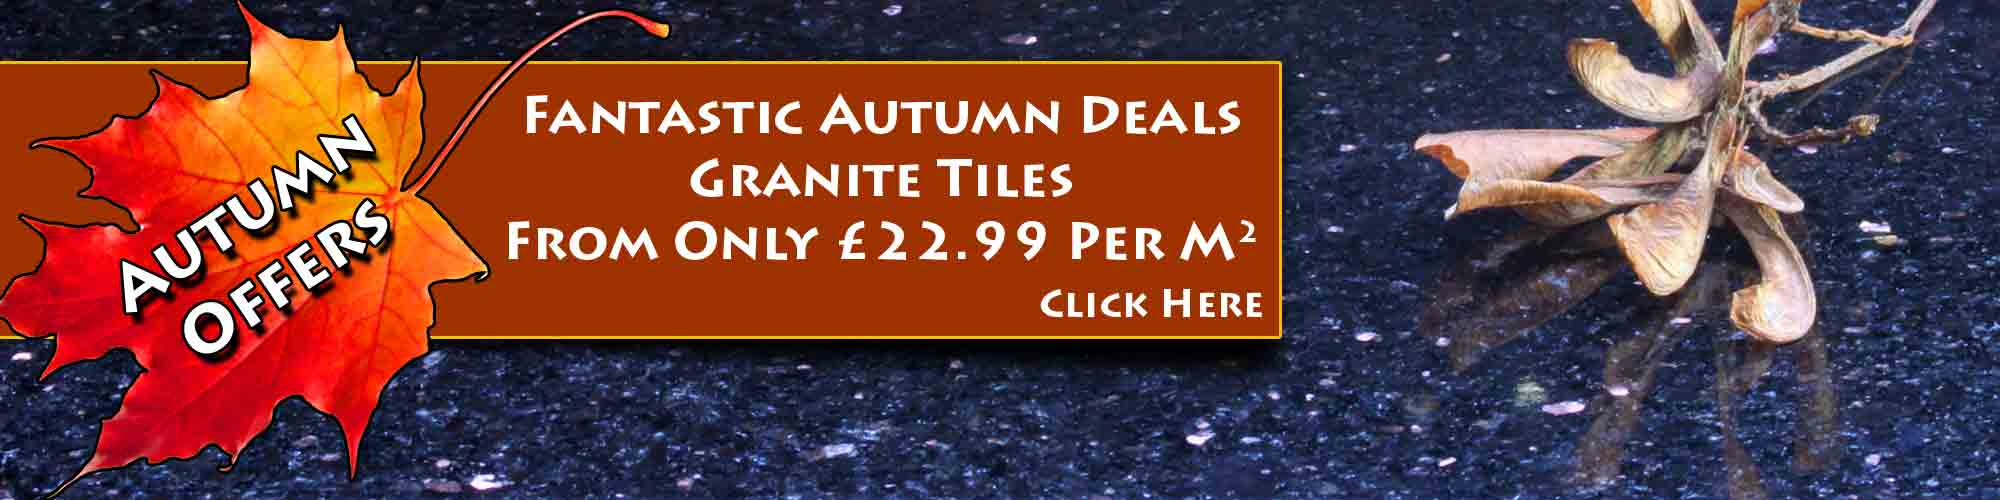 Autumn Deals on Granite Tiles - October Offers